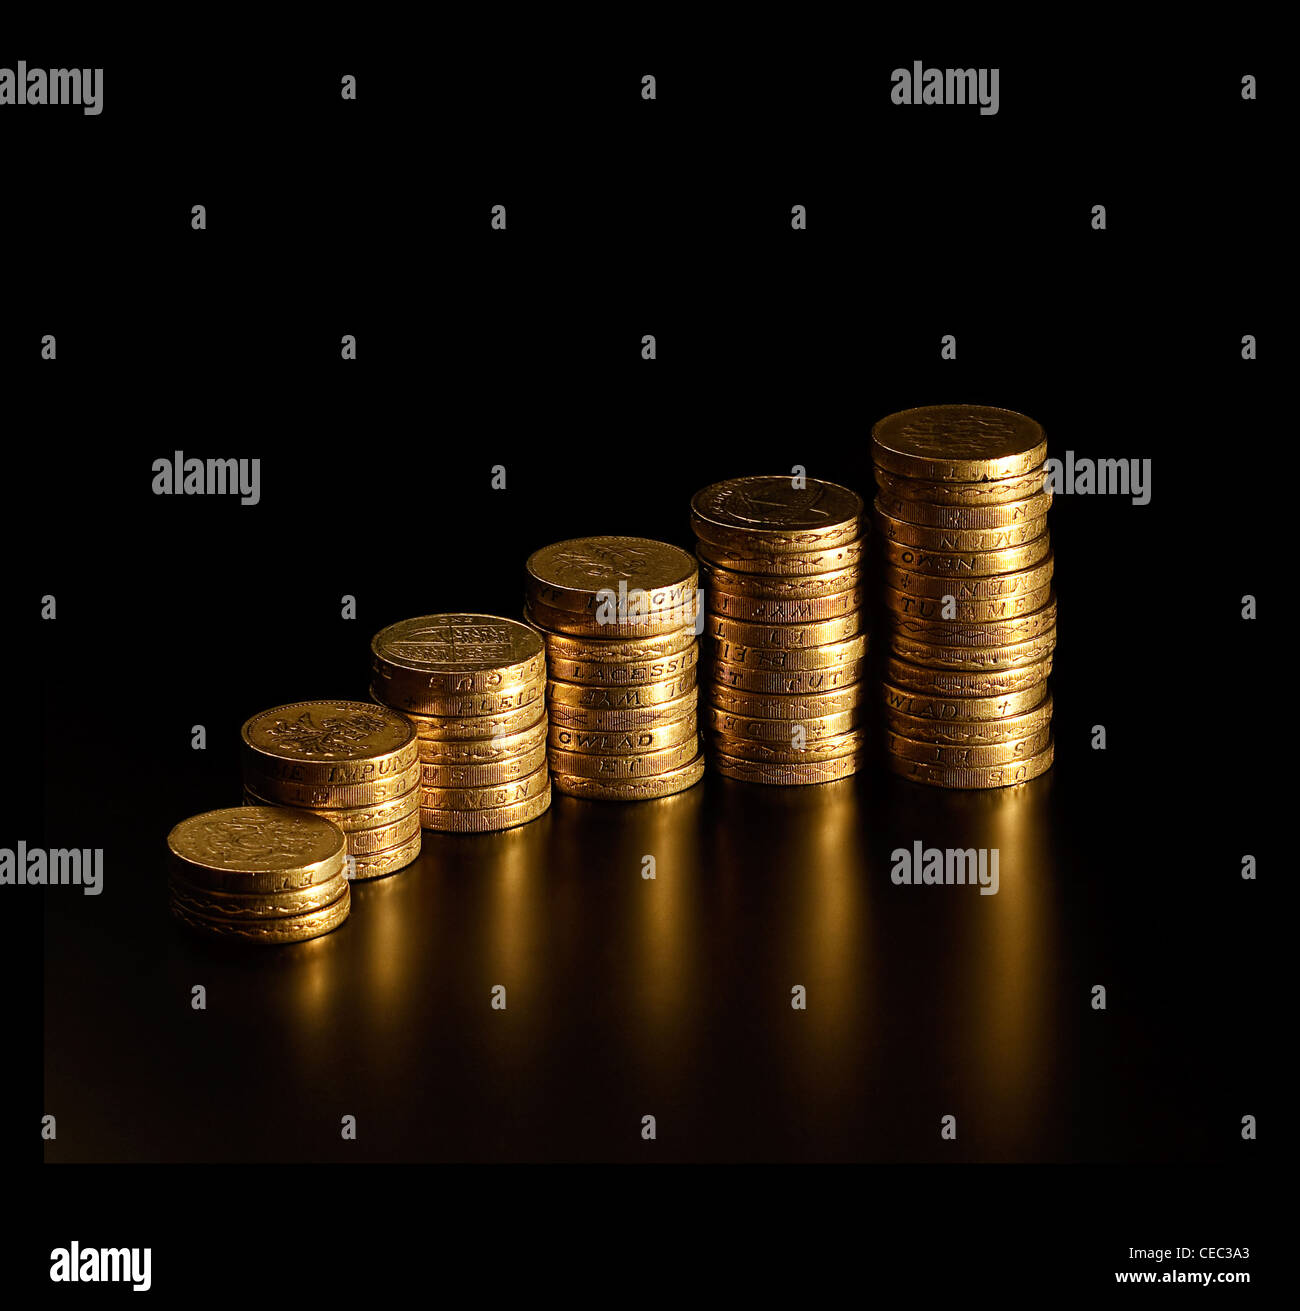 Increasingly higher piles of British Pound Coins resembling an increasing profit graph - Stock Image